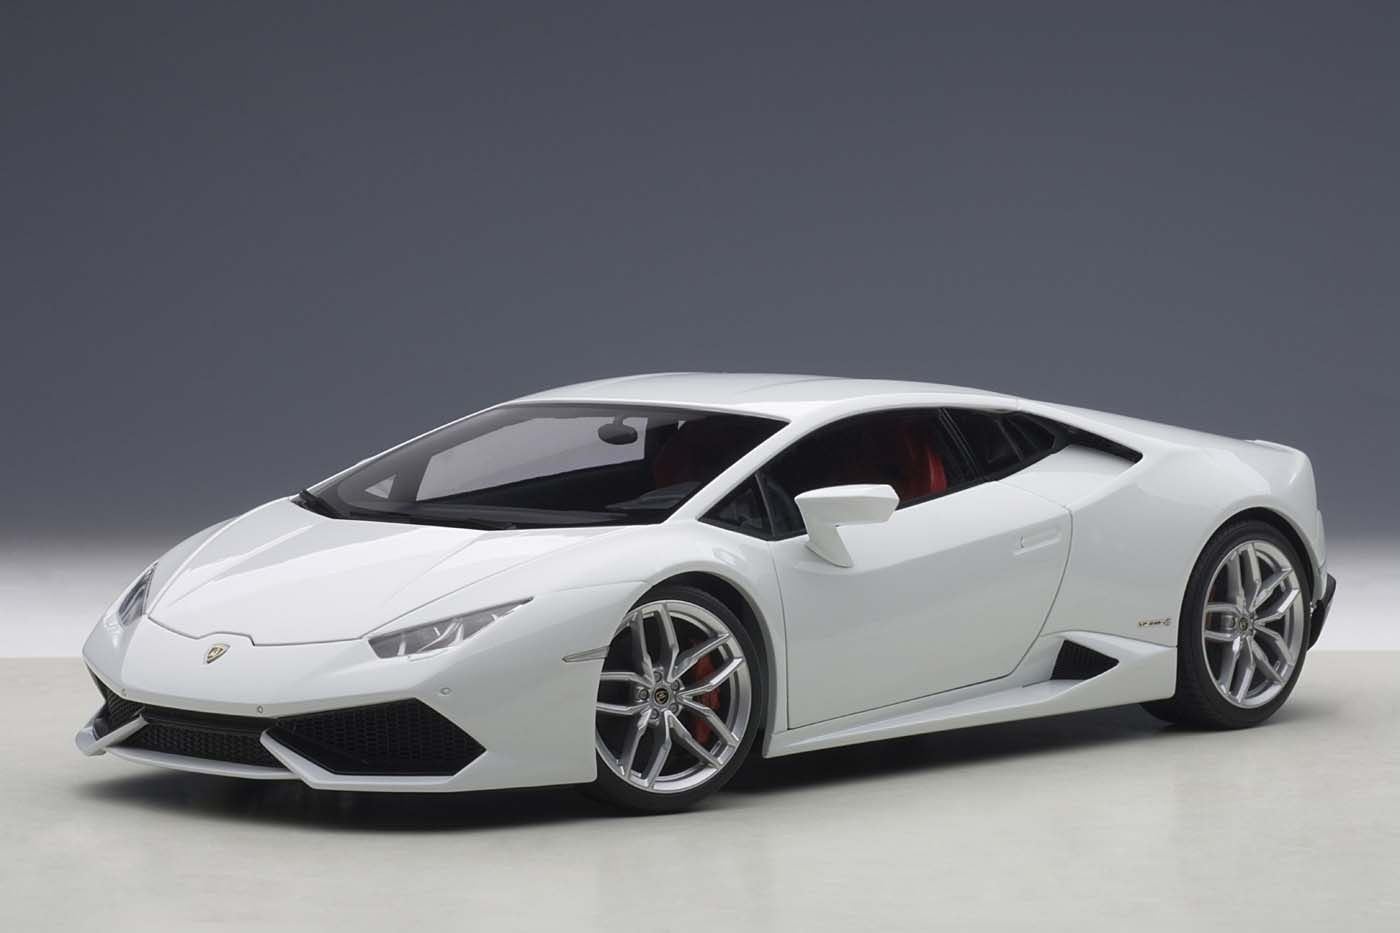 Autoart Highly Detailed Die Cast Model Metallic White